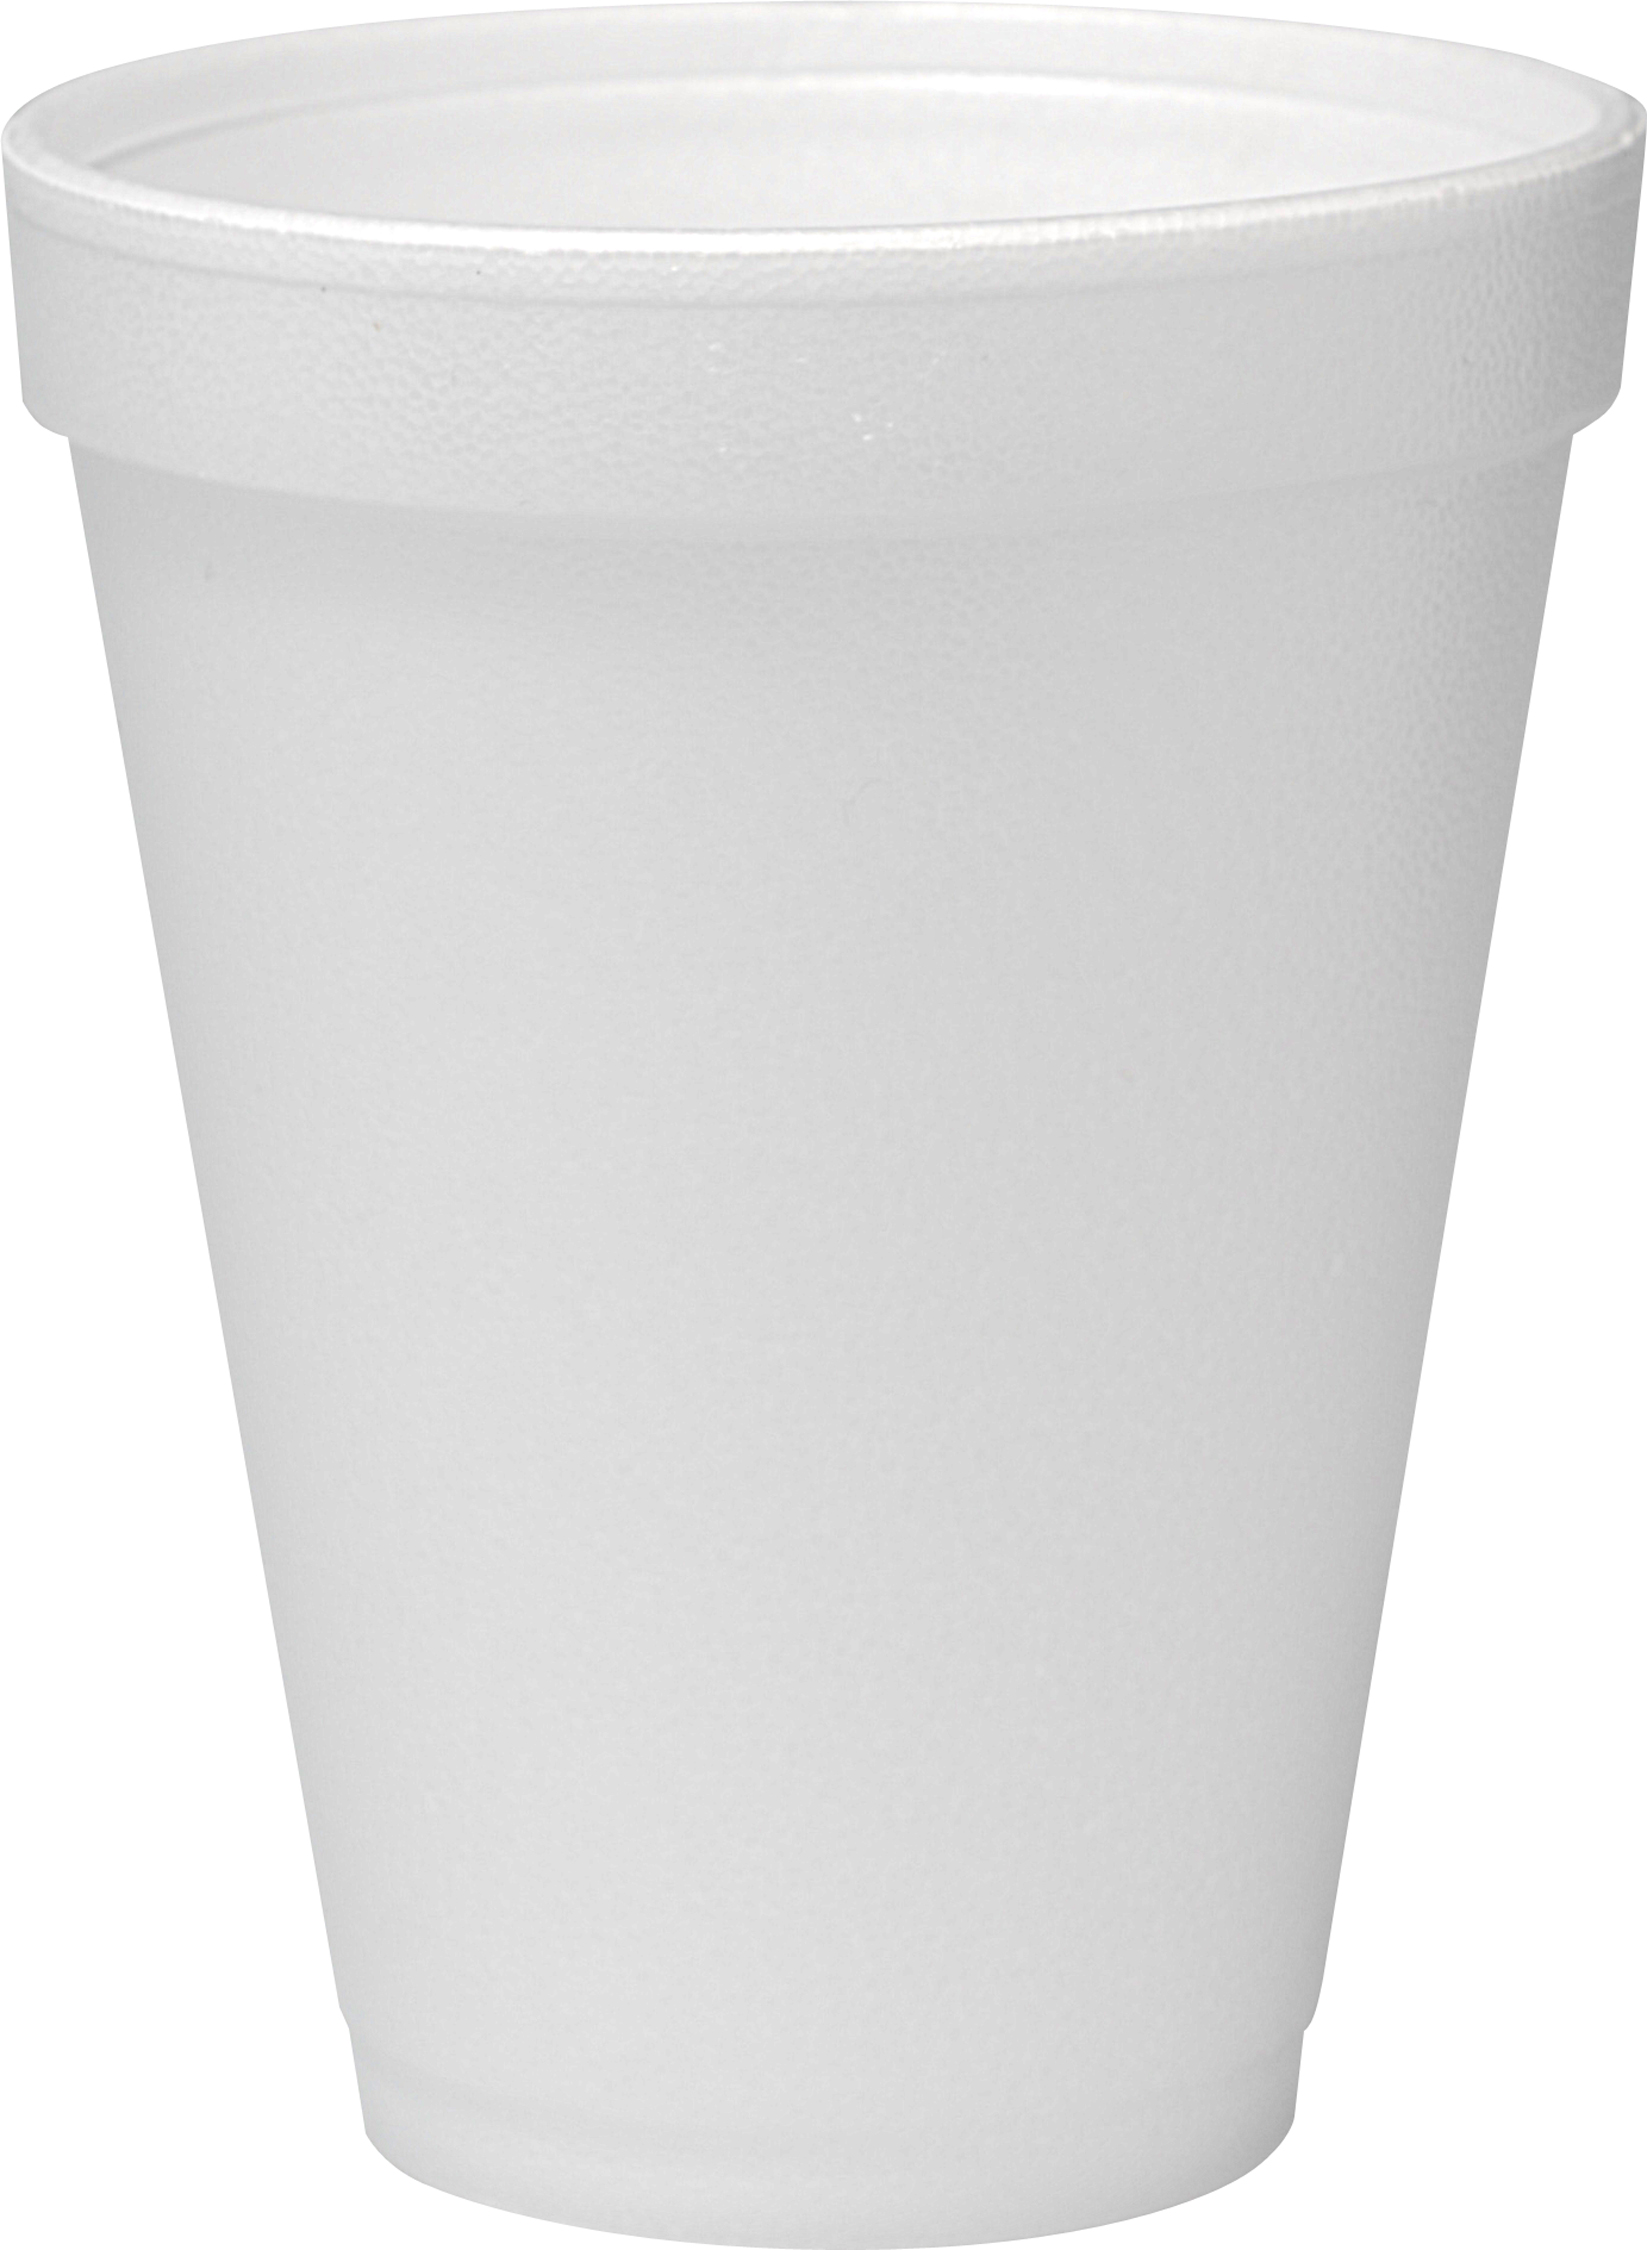 Styrofoam cup clipart black and white.